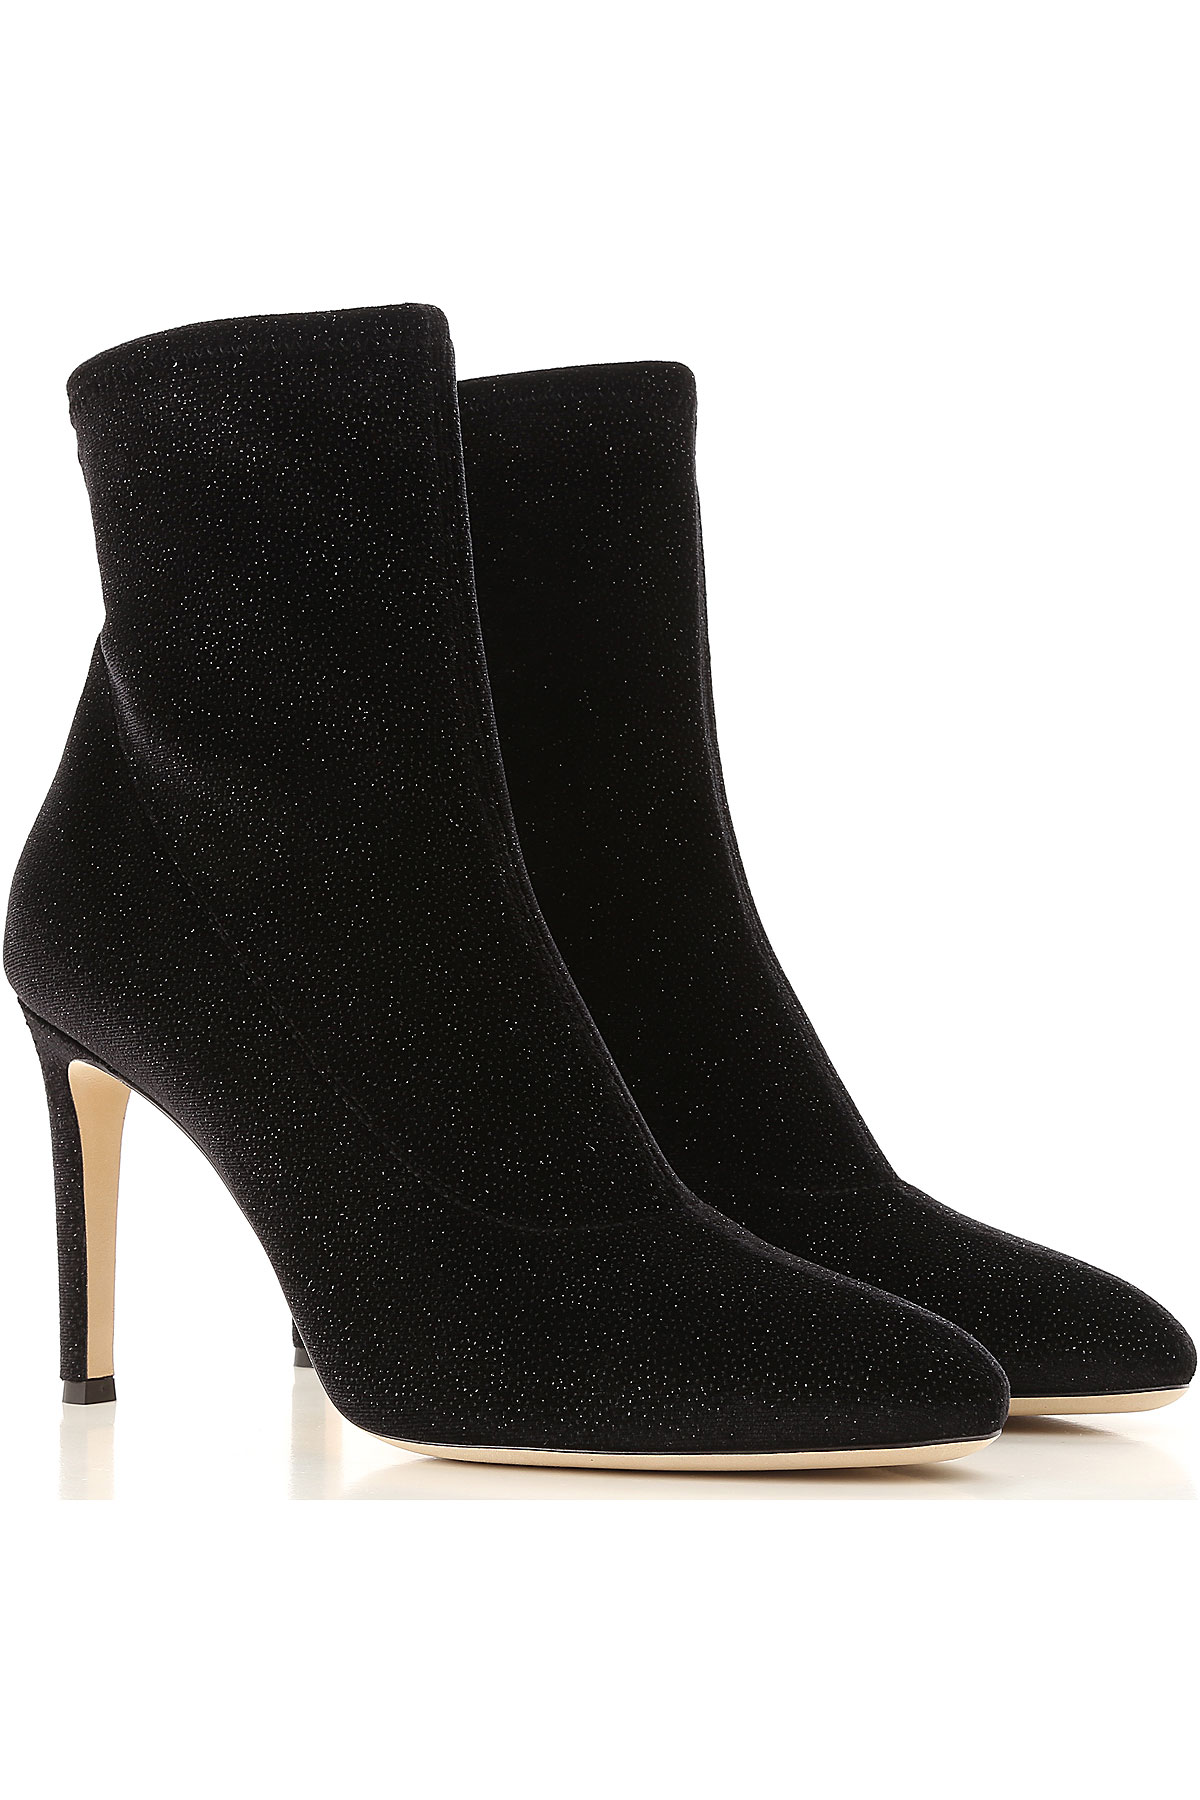 Image of Giuseppe Zanotti Design Boots for Women, Booties, Black, 2017, 6 7 8